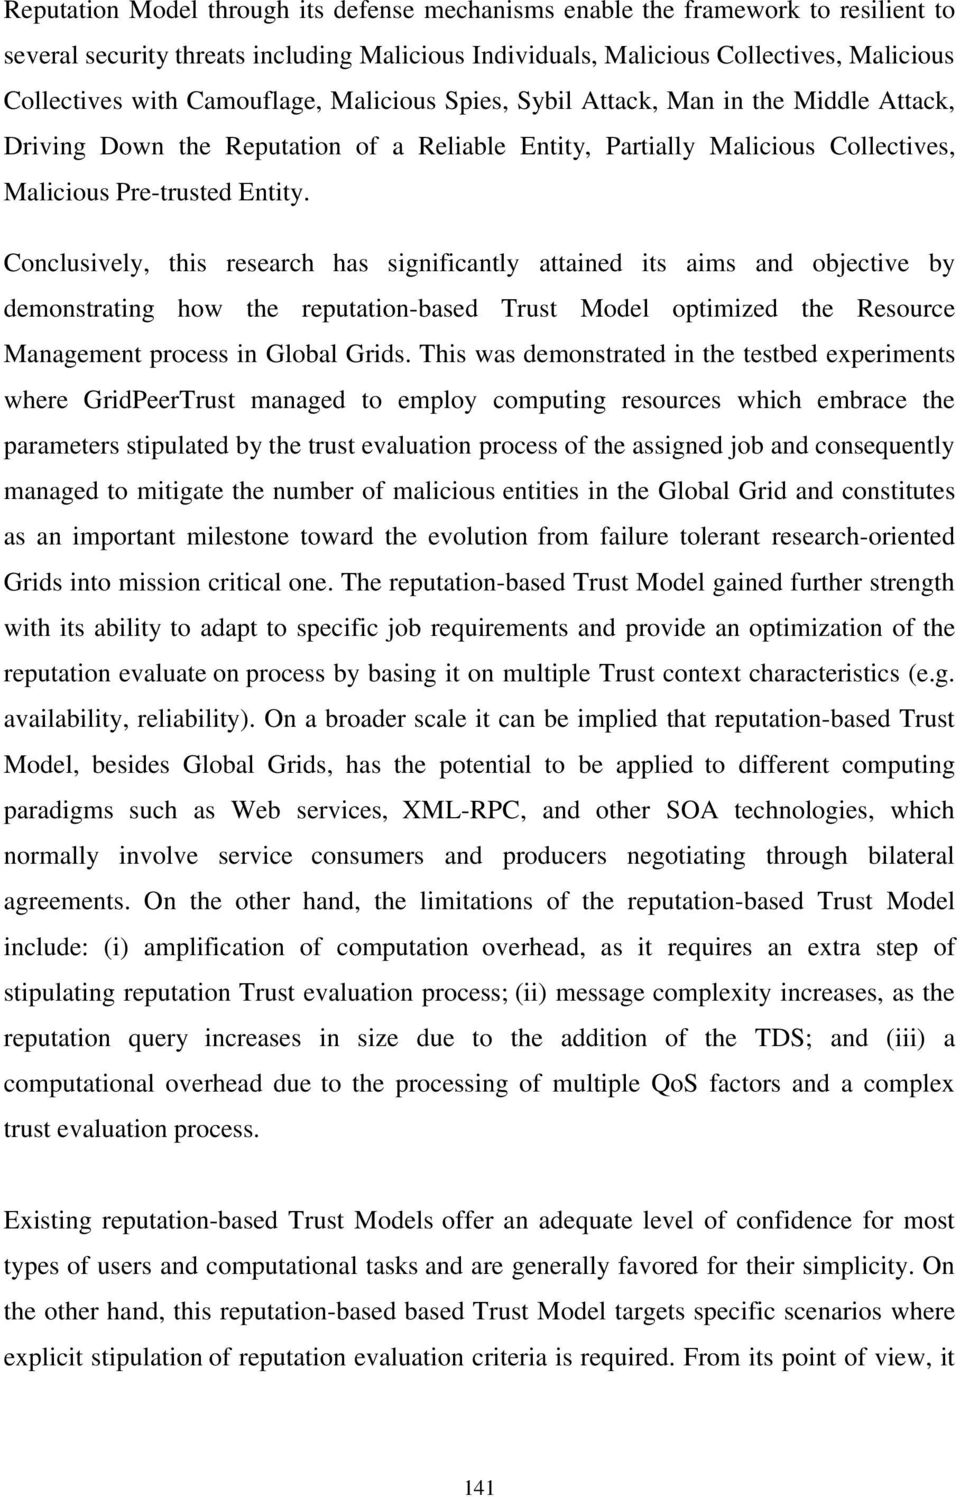 Conclusively, this research has significantly attained its aims and objective by demonstrating how the reputation-based Trust Model optimized the Resource Management process in Global Grids.